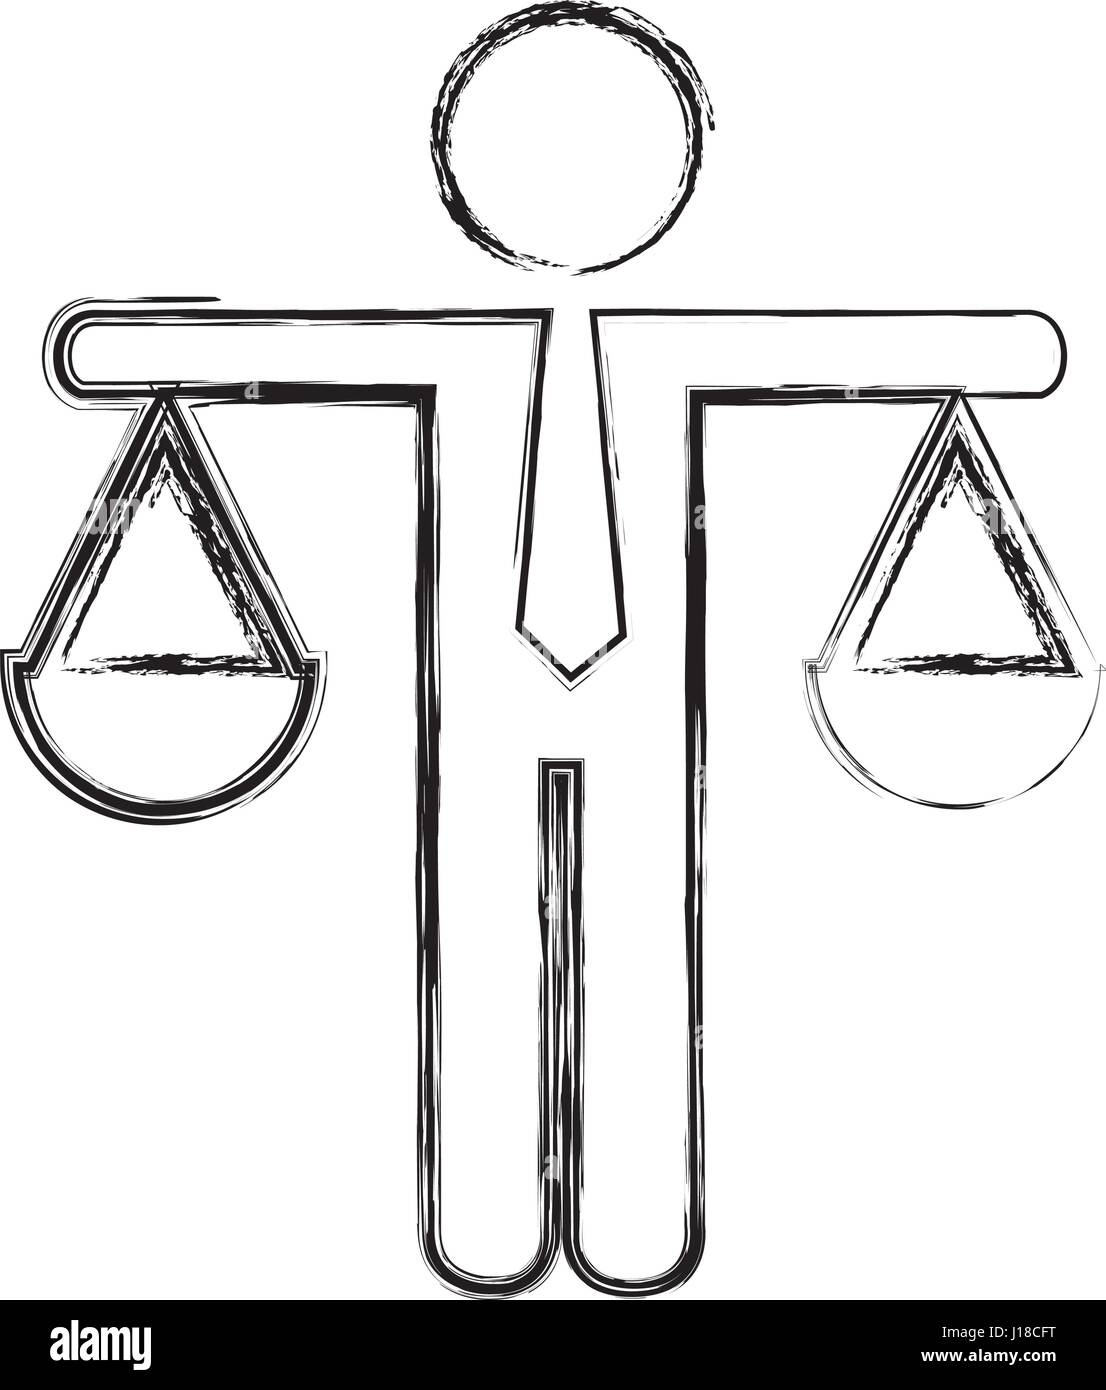 justice balance isolated icon - Stock Image